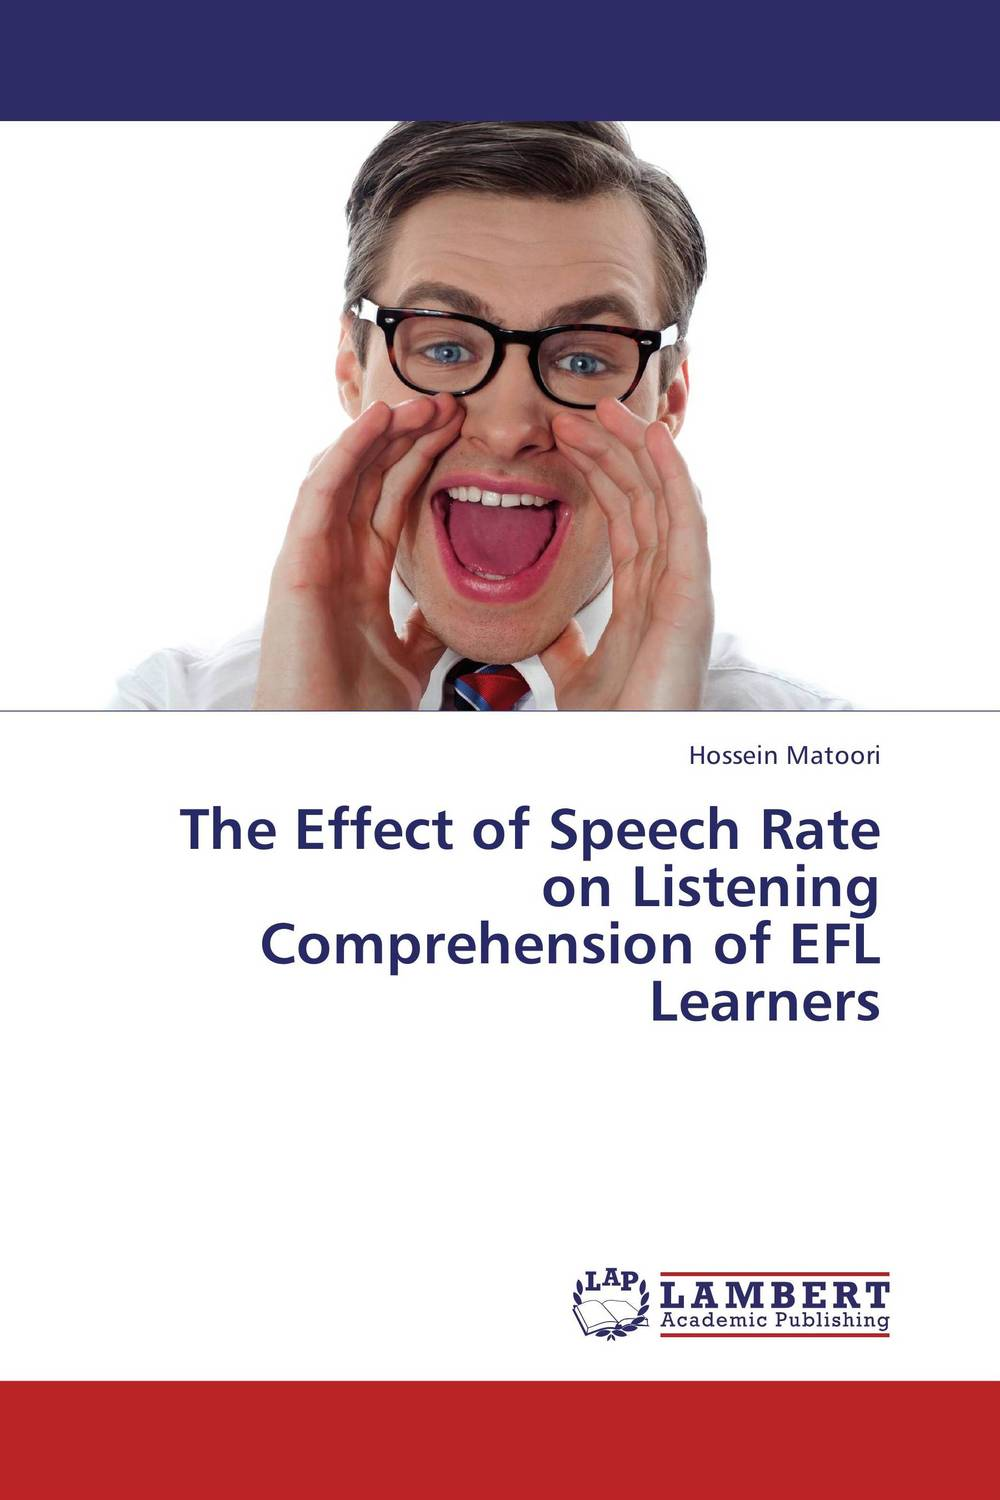 The Effect of Speech Rate on Listening Comprehension of EFL Learners